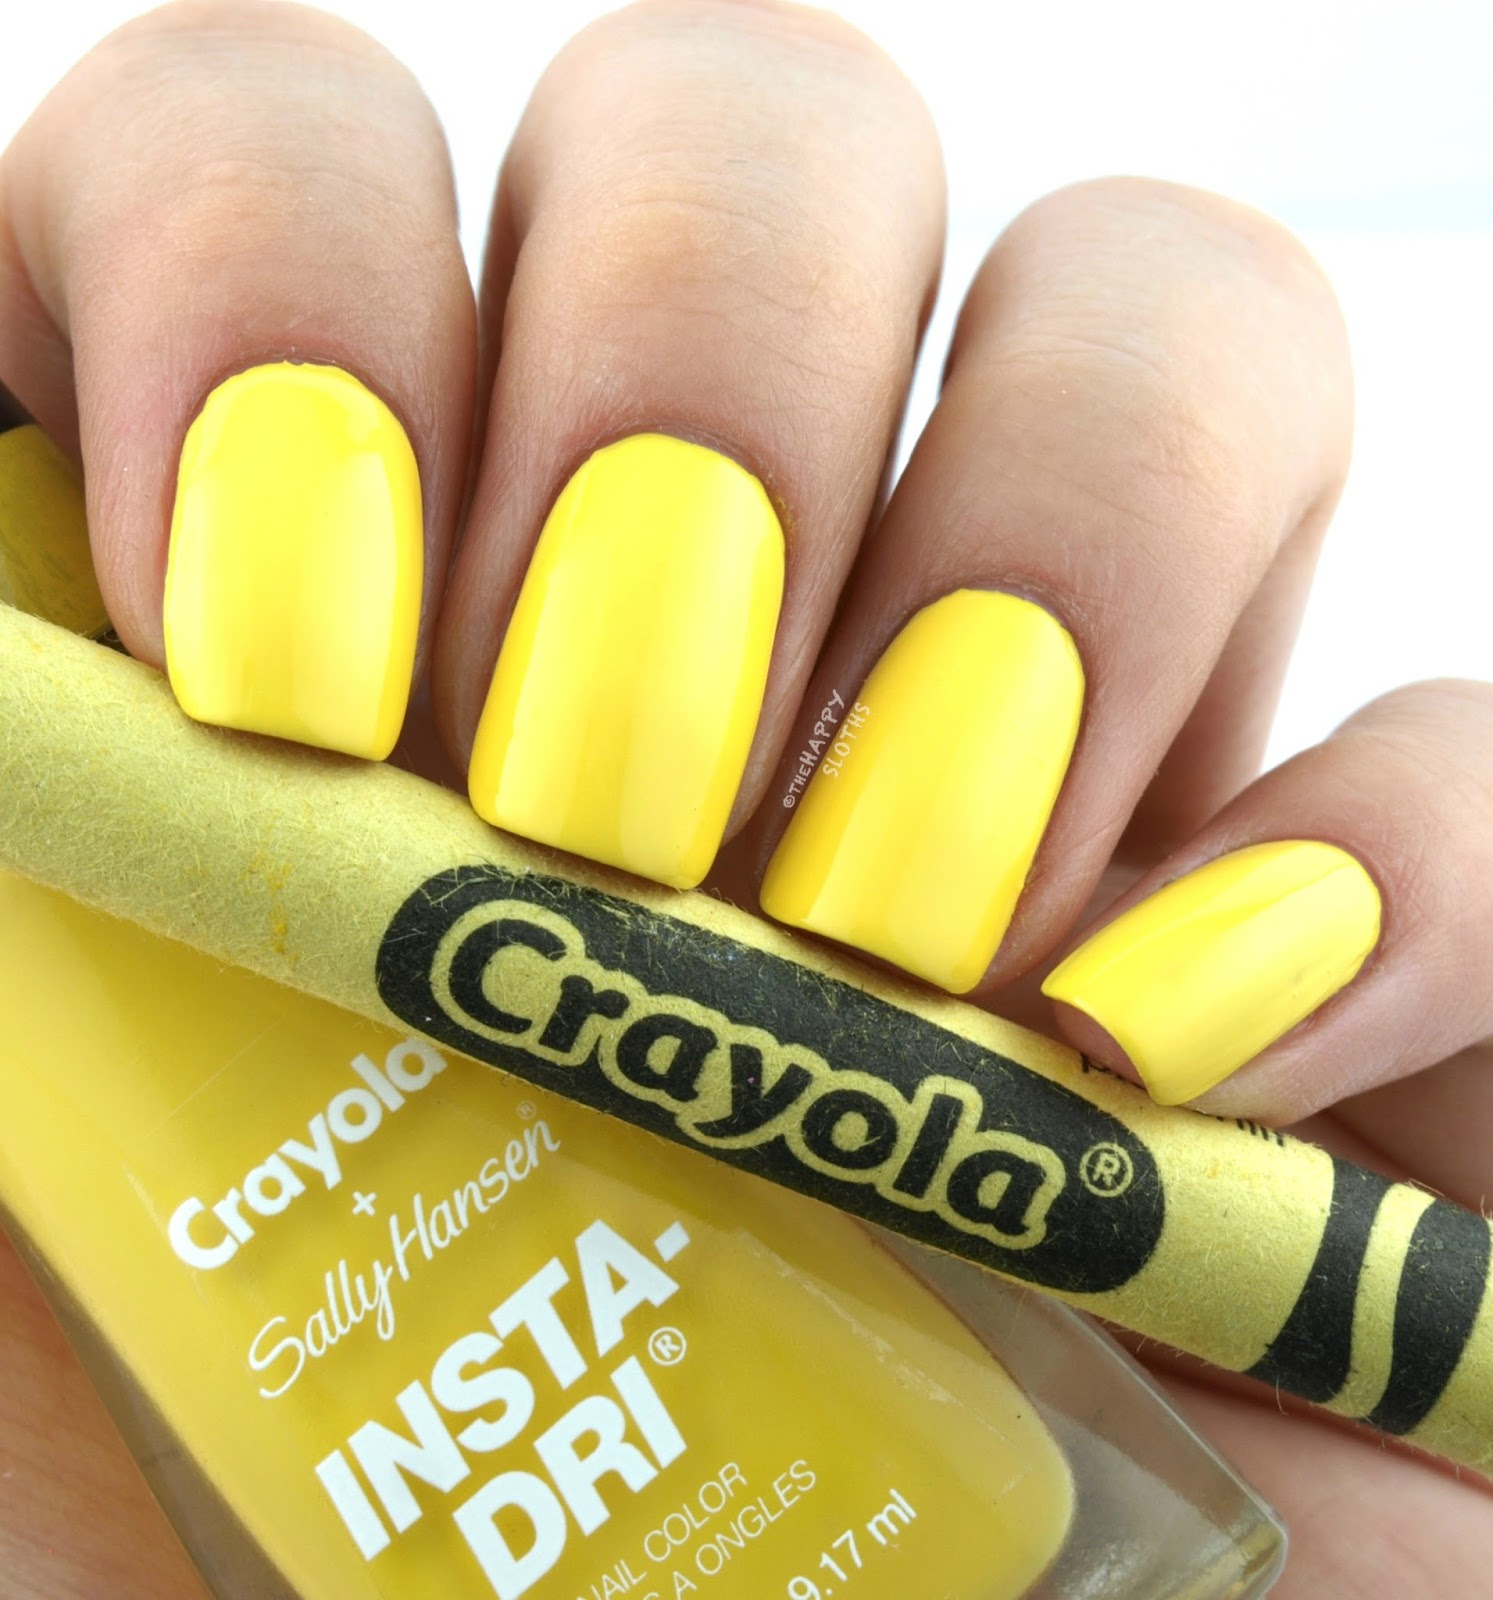 Sally Hansen + Crayola Collection | 505 Dandelion: Review and Swatches